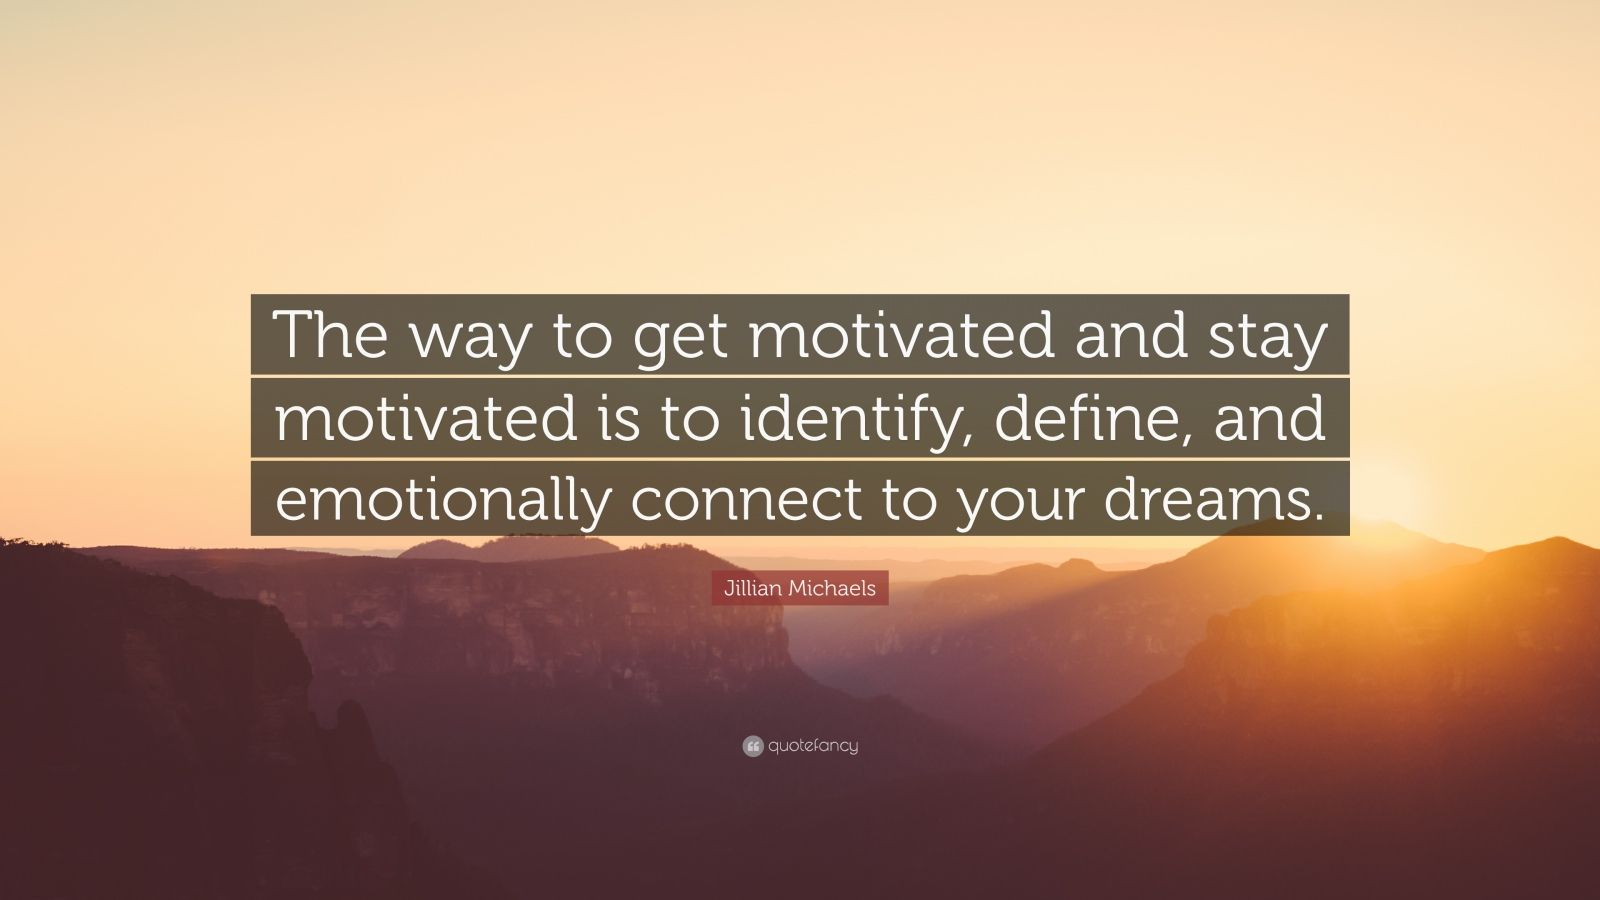 """Quotes To Stay Motivated At Work: Jillian Michaels Quote: """"The Way To Get Motivated And Stay"""